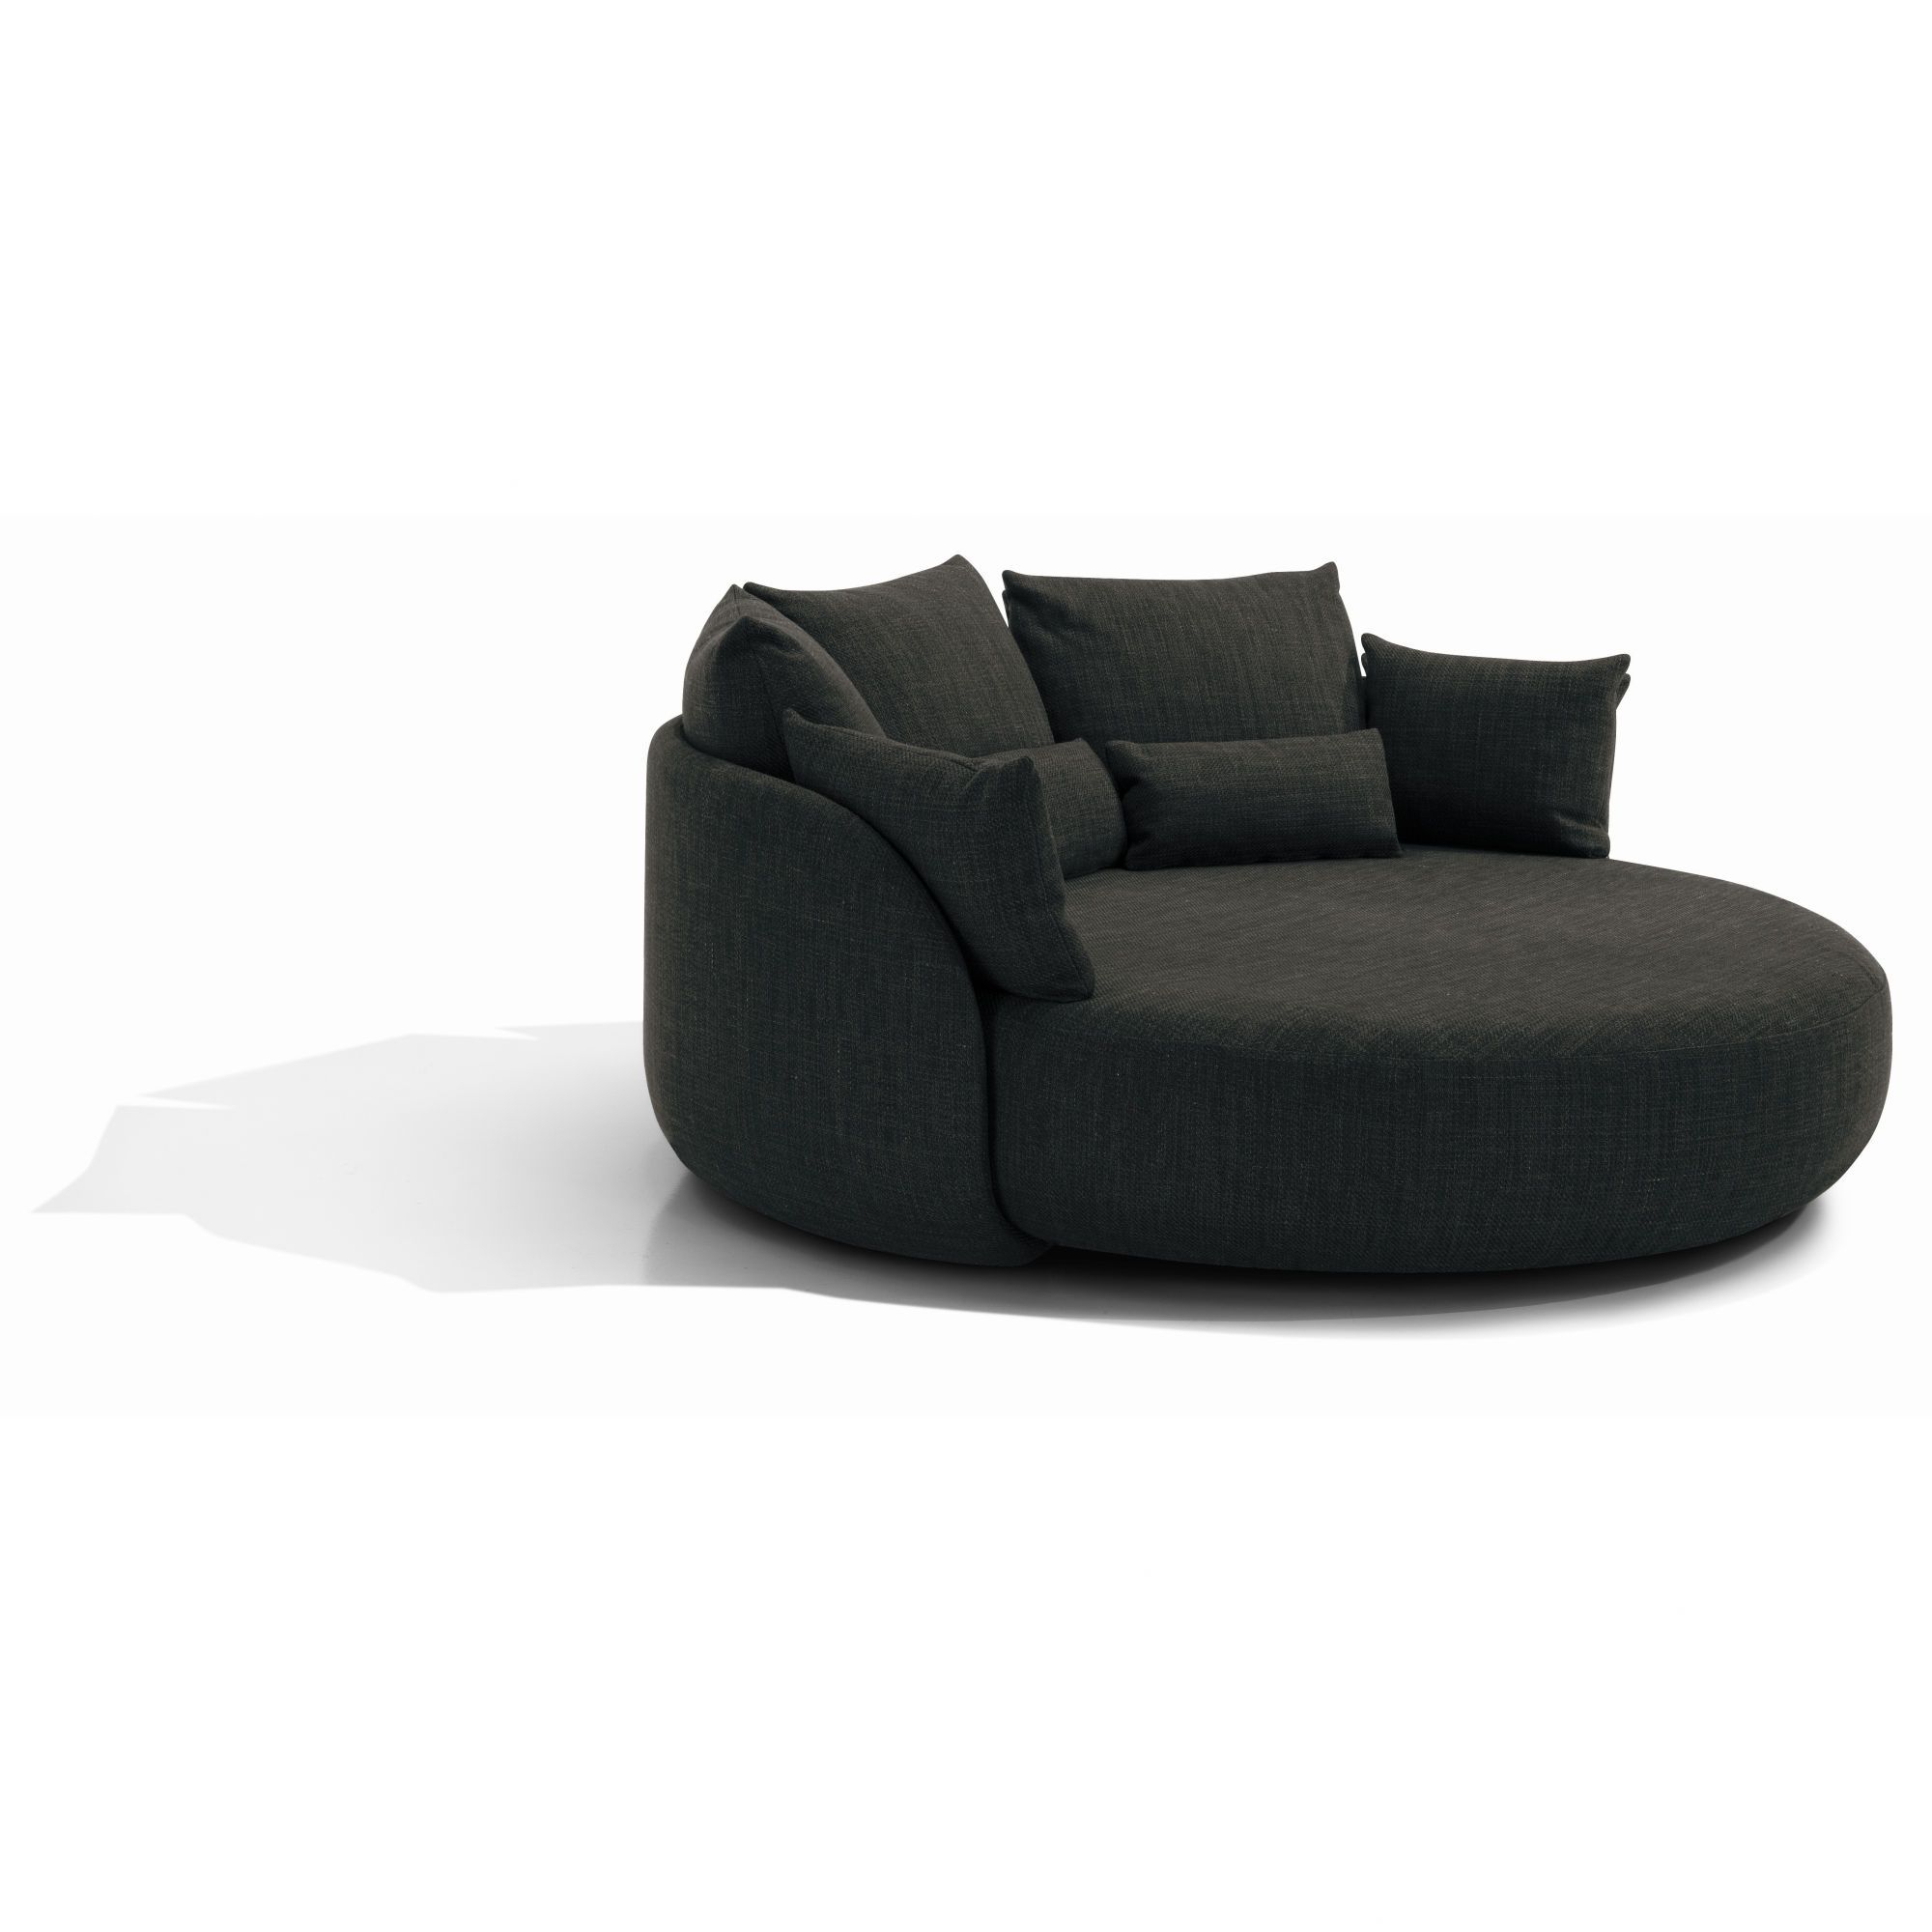 "Totally Impractical Sofa For Our Small Space At 81"" Round – Is It With Regard To Cohen Foam Oversized Sofa Chairs (Photo 9 of 20)"